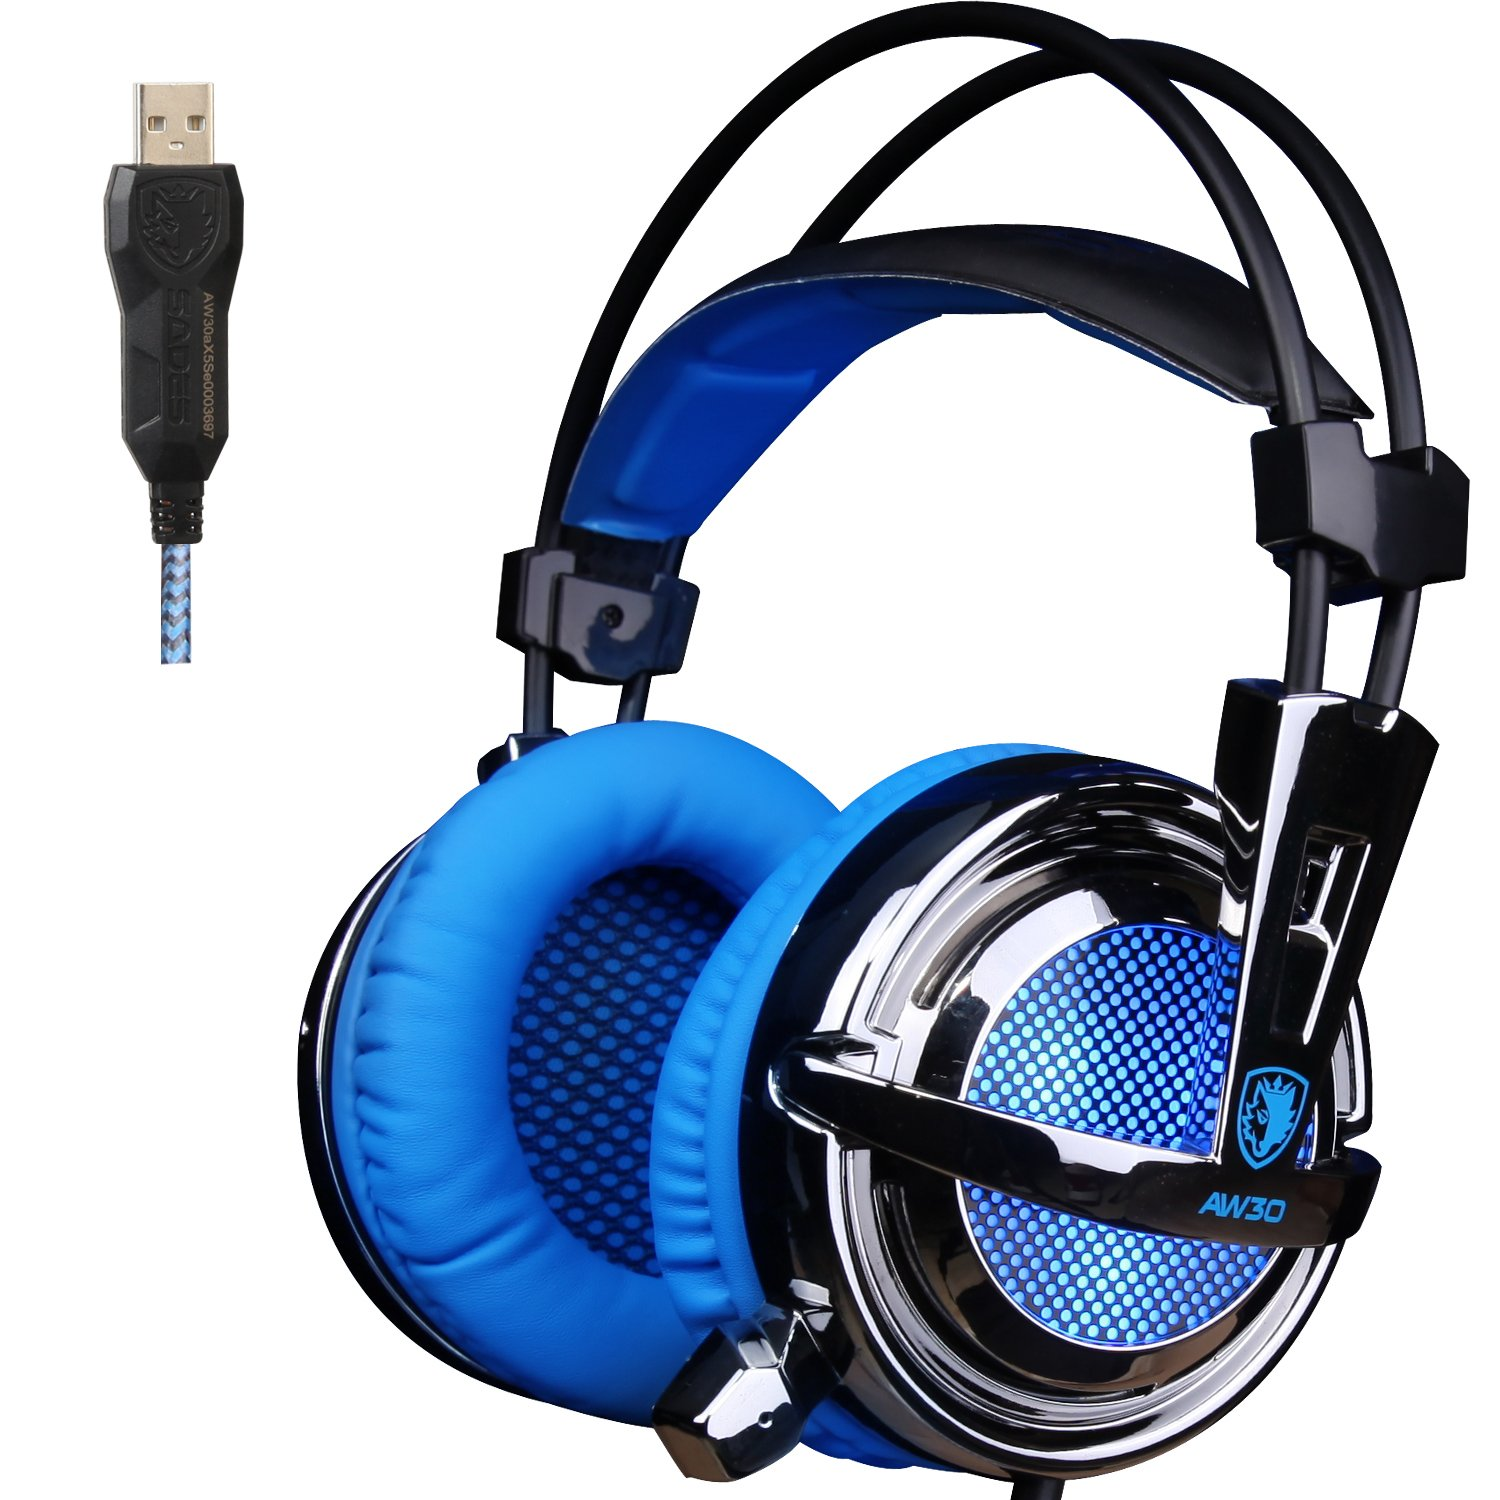 GW SADES AW30 Professional 7.1 Surround Sound USB Wired Stereo Gaming Headset Headphones with Microphone Vibration Volume Control LED Lights Lightweight Design for PC Game(Black&Blue)